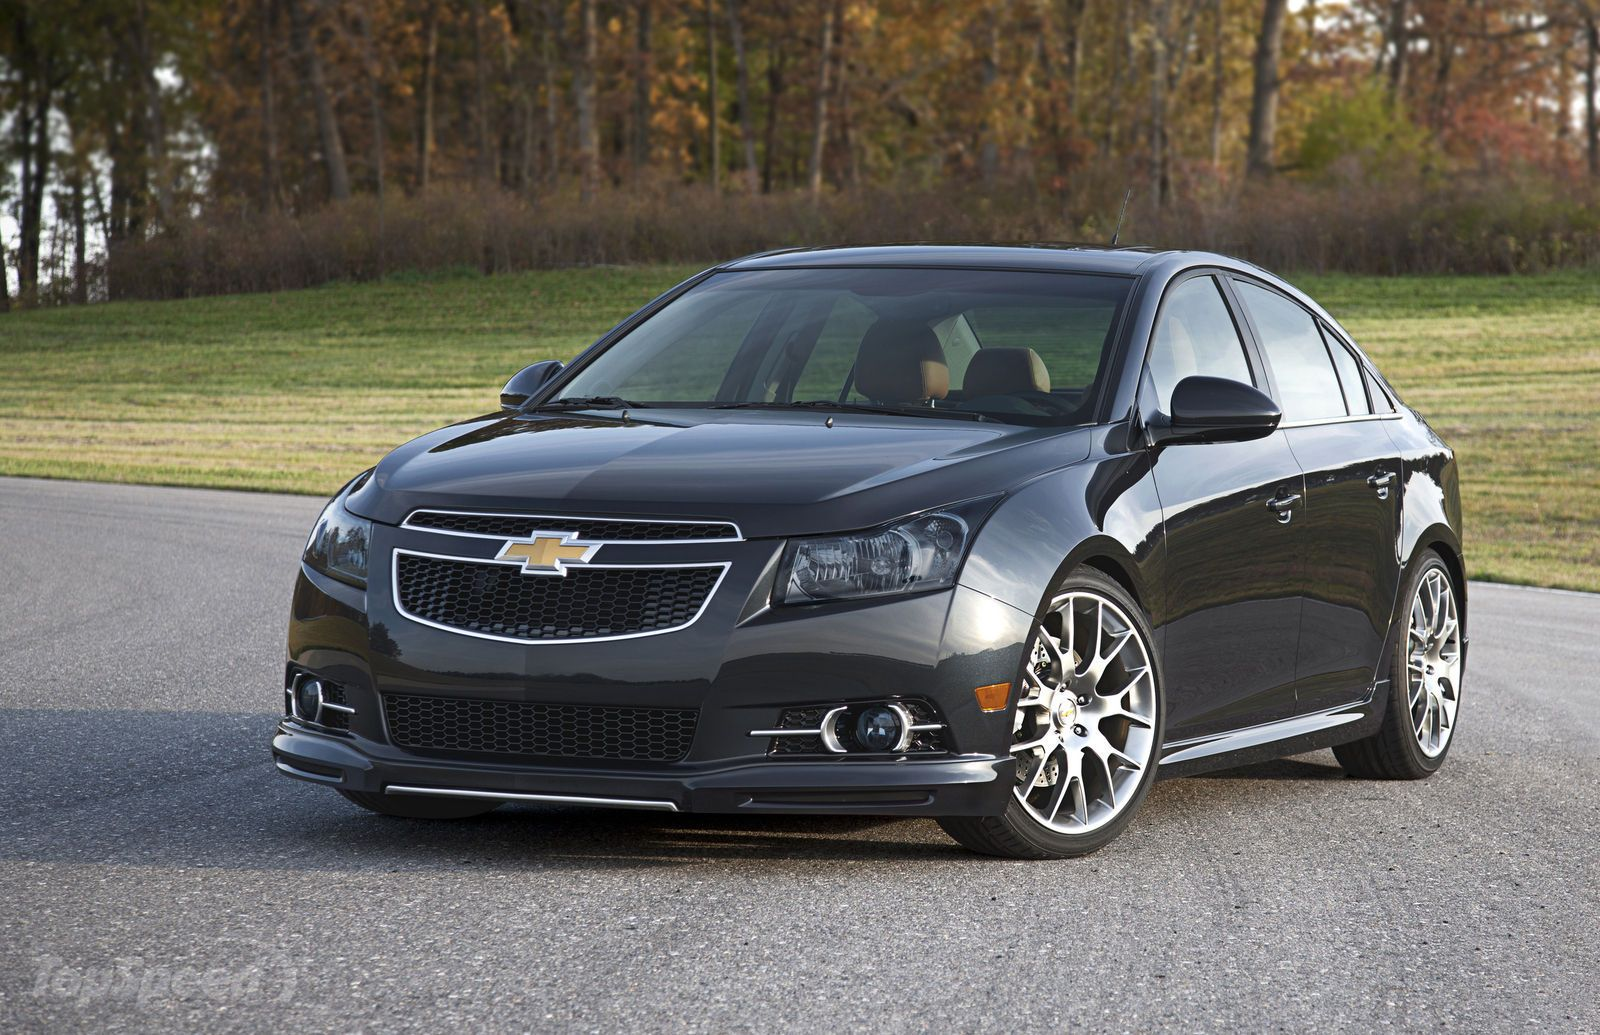 Cruze chevy cruze 2lt : Grey Chevy Cruze | Cars and Trucks | Pinterest | Cars, Chevrolet ...